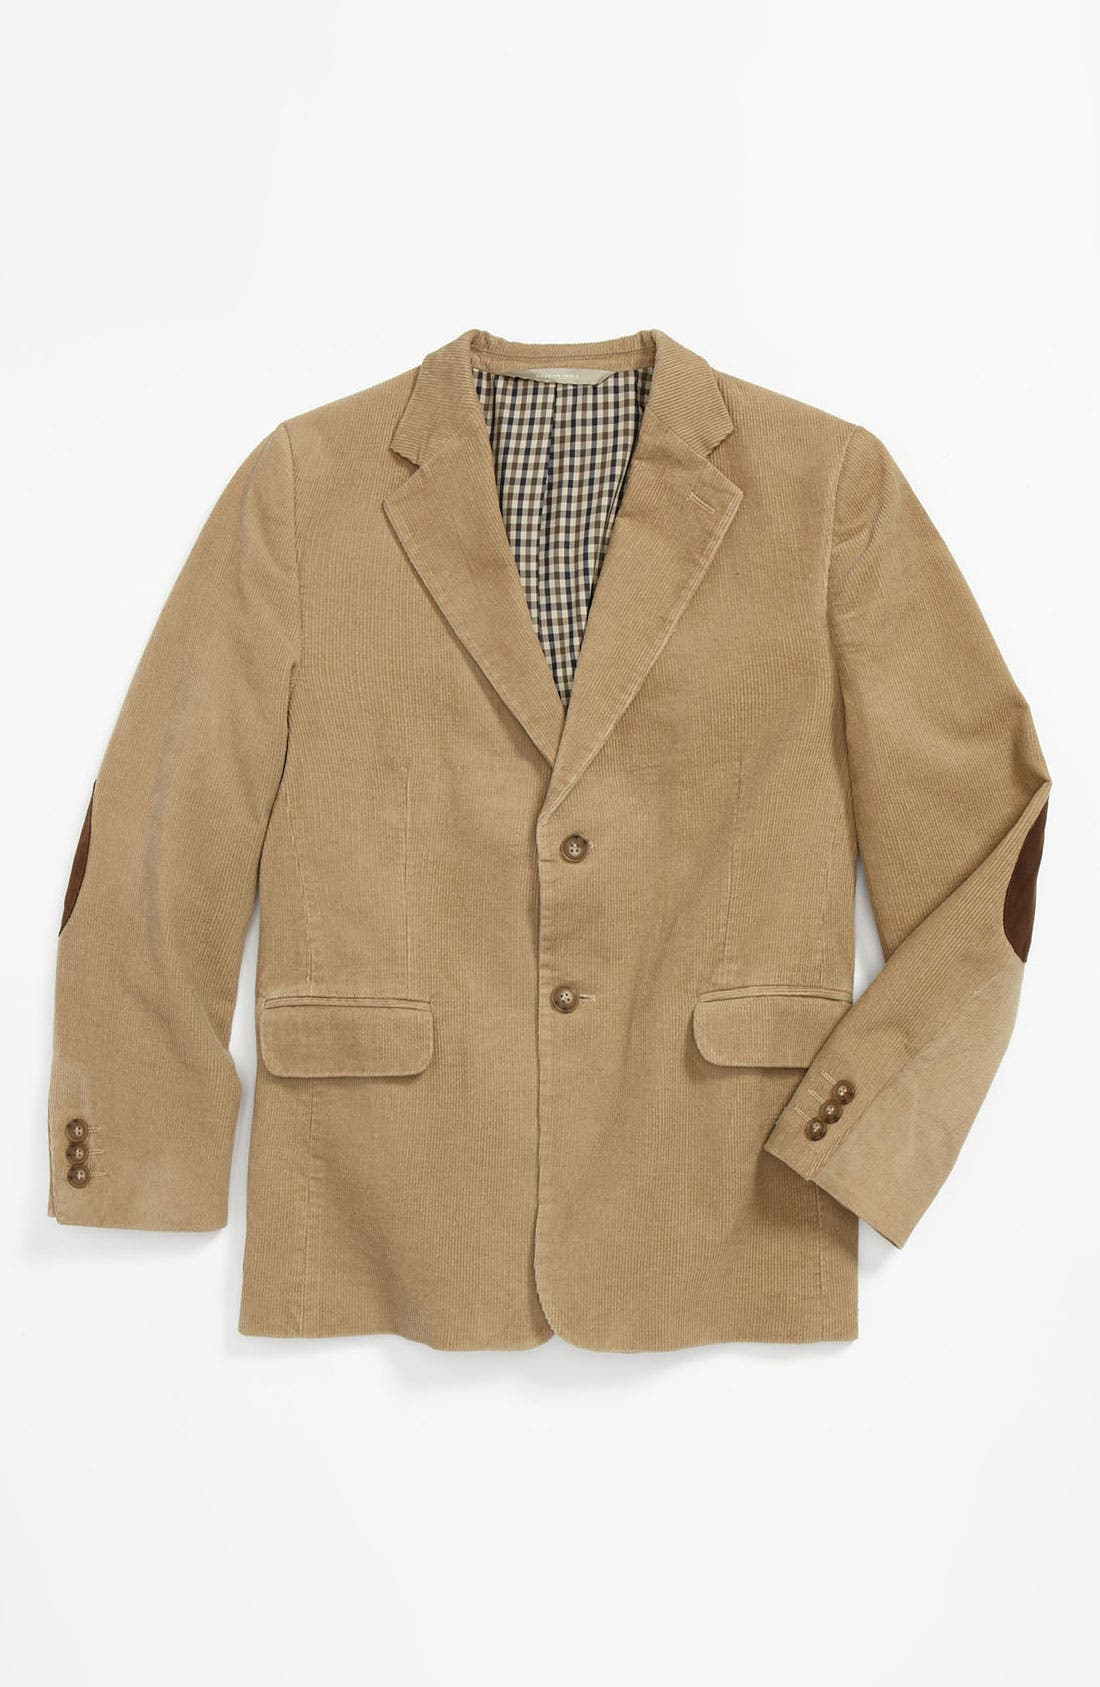 Alternate Image 1 Selected - Nordstrom 'Charlie' Corduroy Blazer (Big Boys)